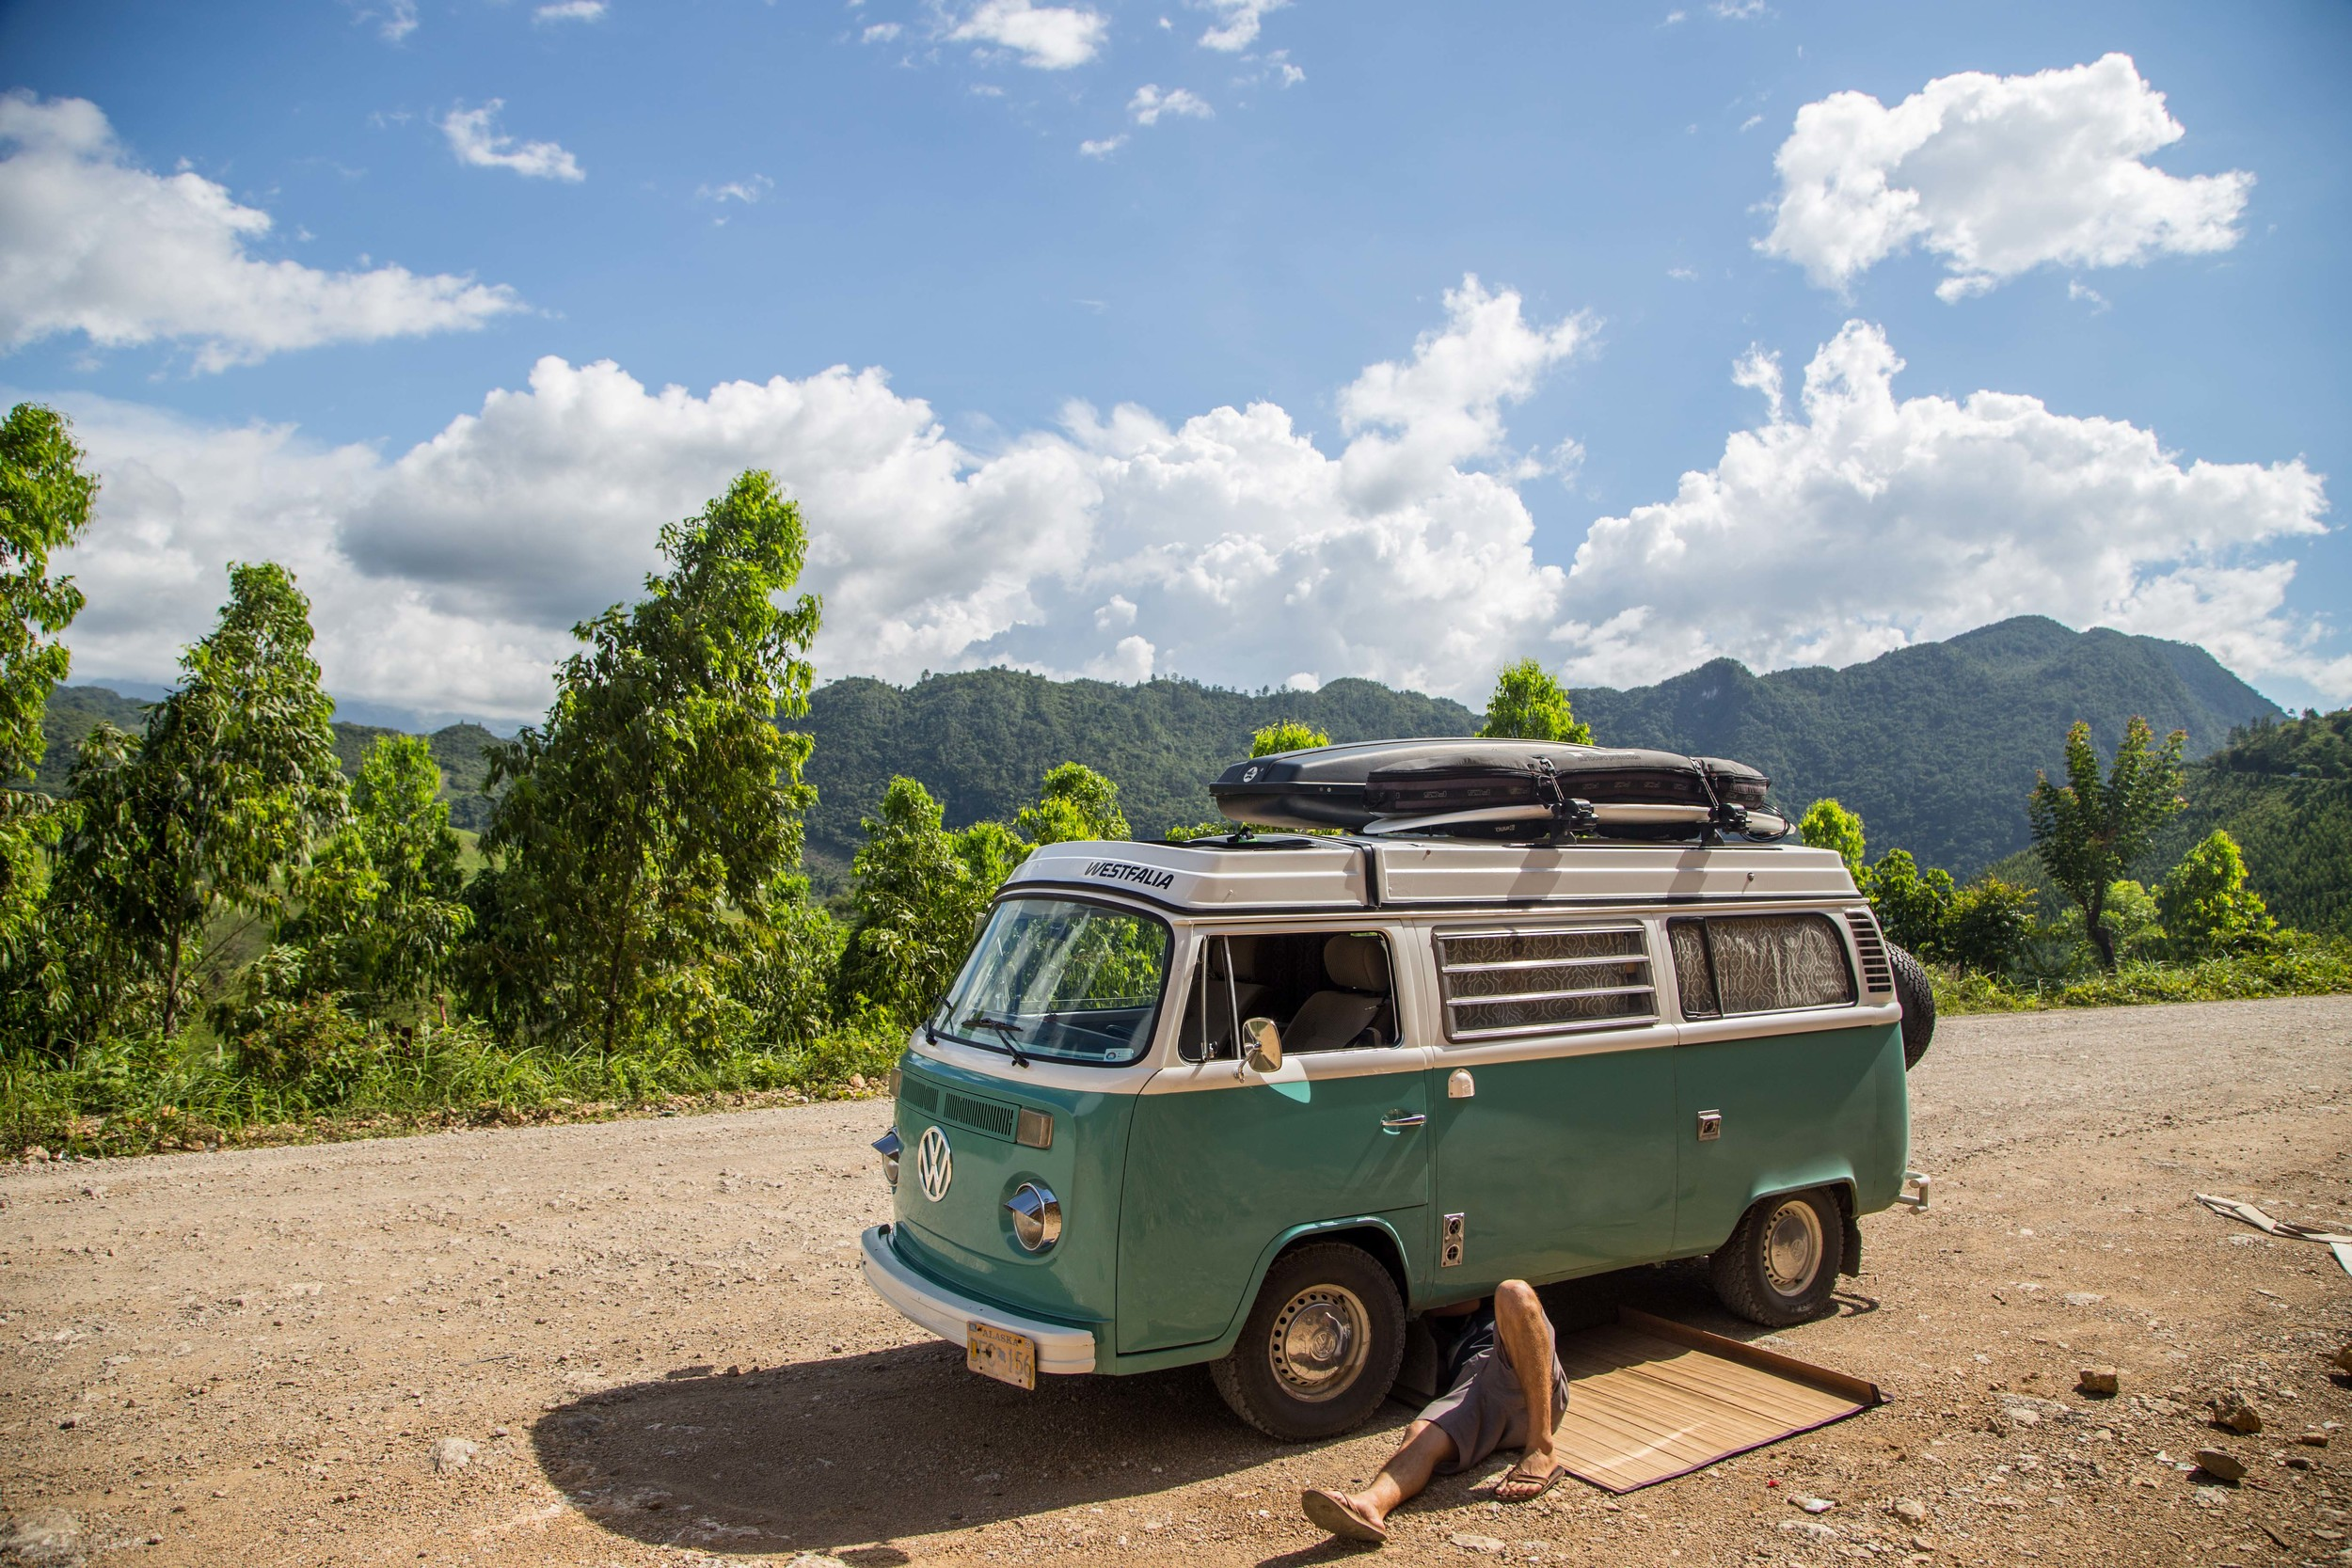 Everyday there seems to be some variation of this. Welcome to VW Bus ownership